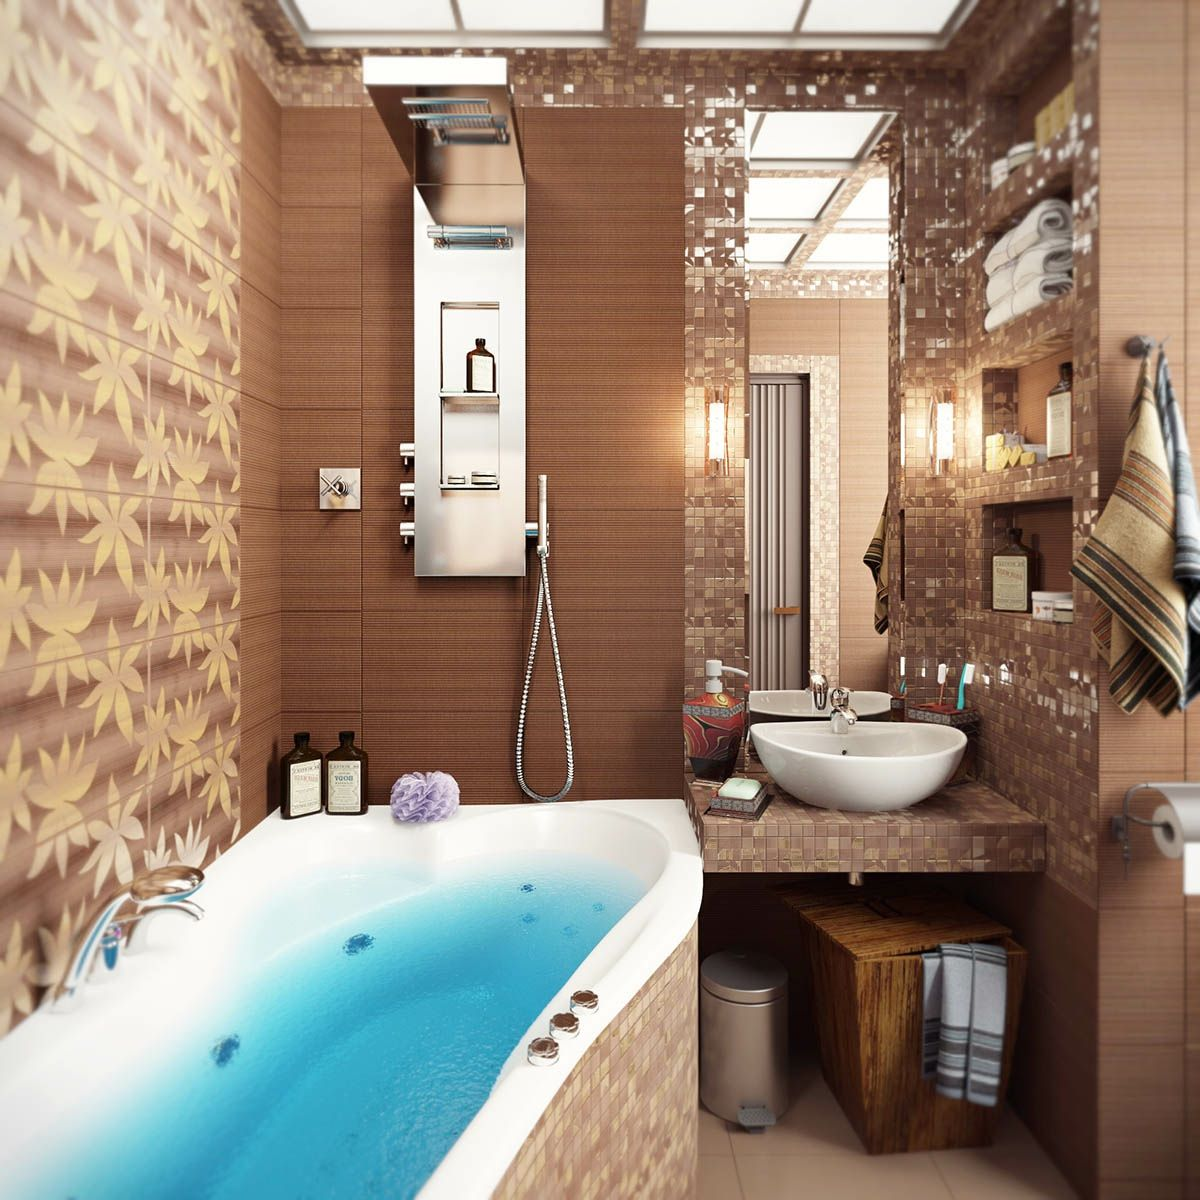 soft-brown-paint-and-bathroom-with-flower-bathroom-tiles-design